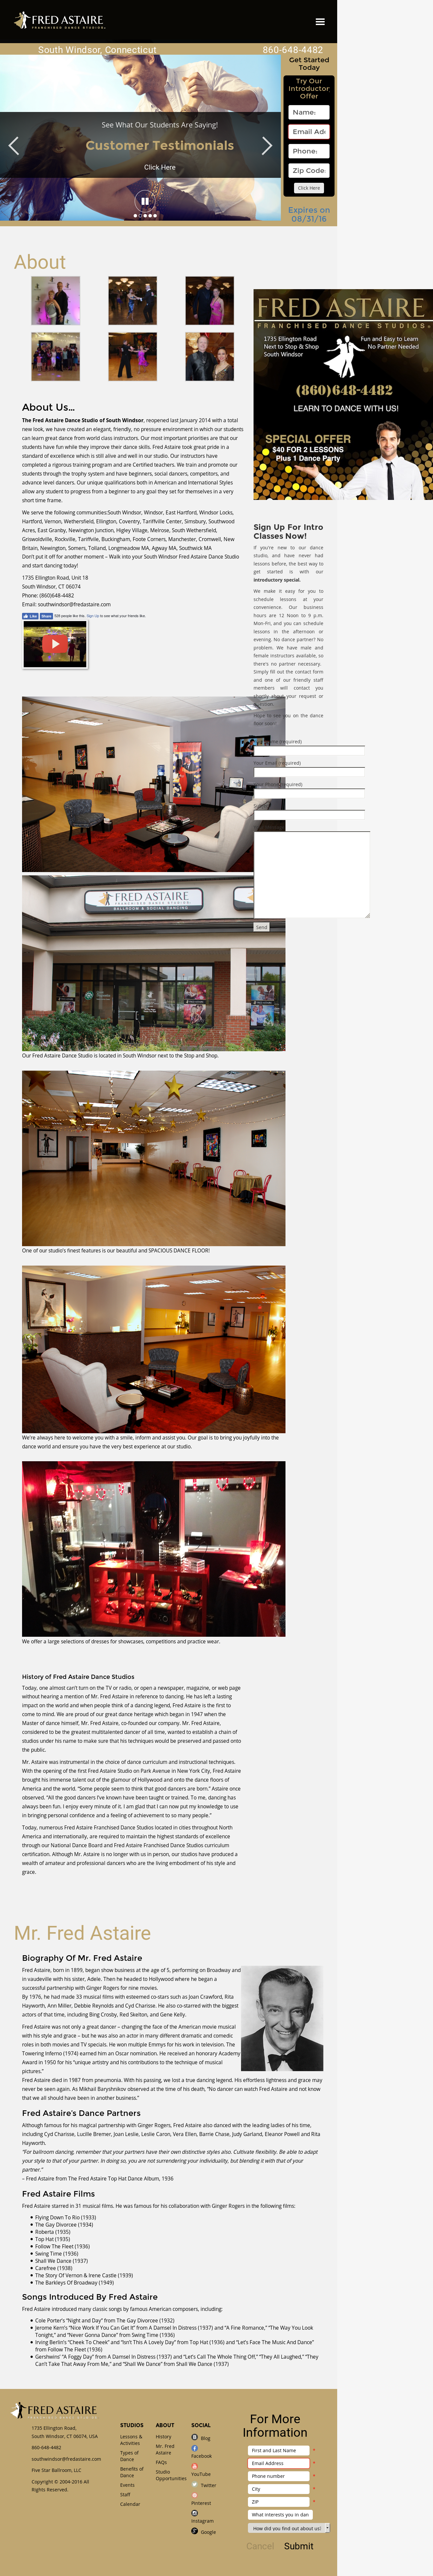 Fred Astaire Dance Studio Of South Windsor Competitors Revenue And Employees Owler Company Profile